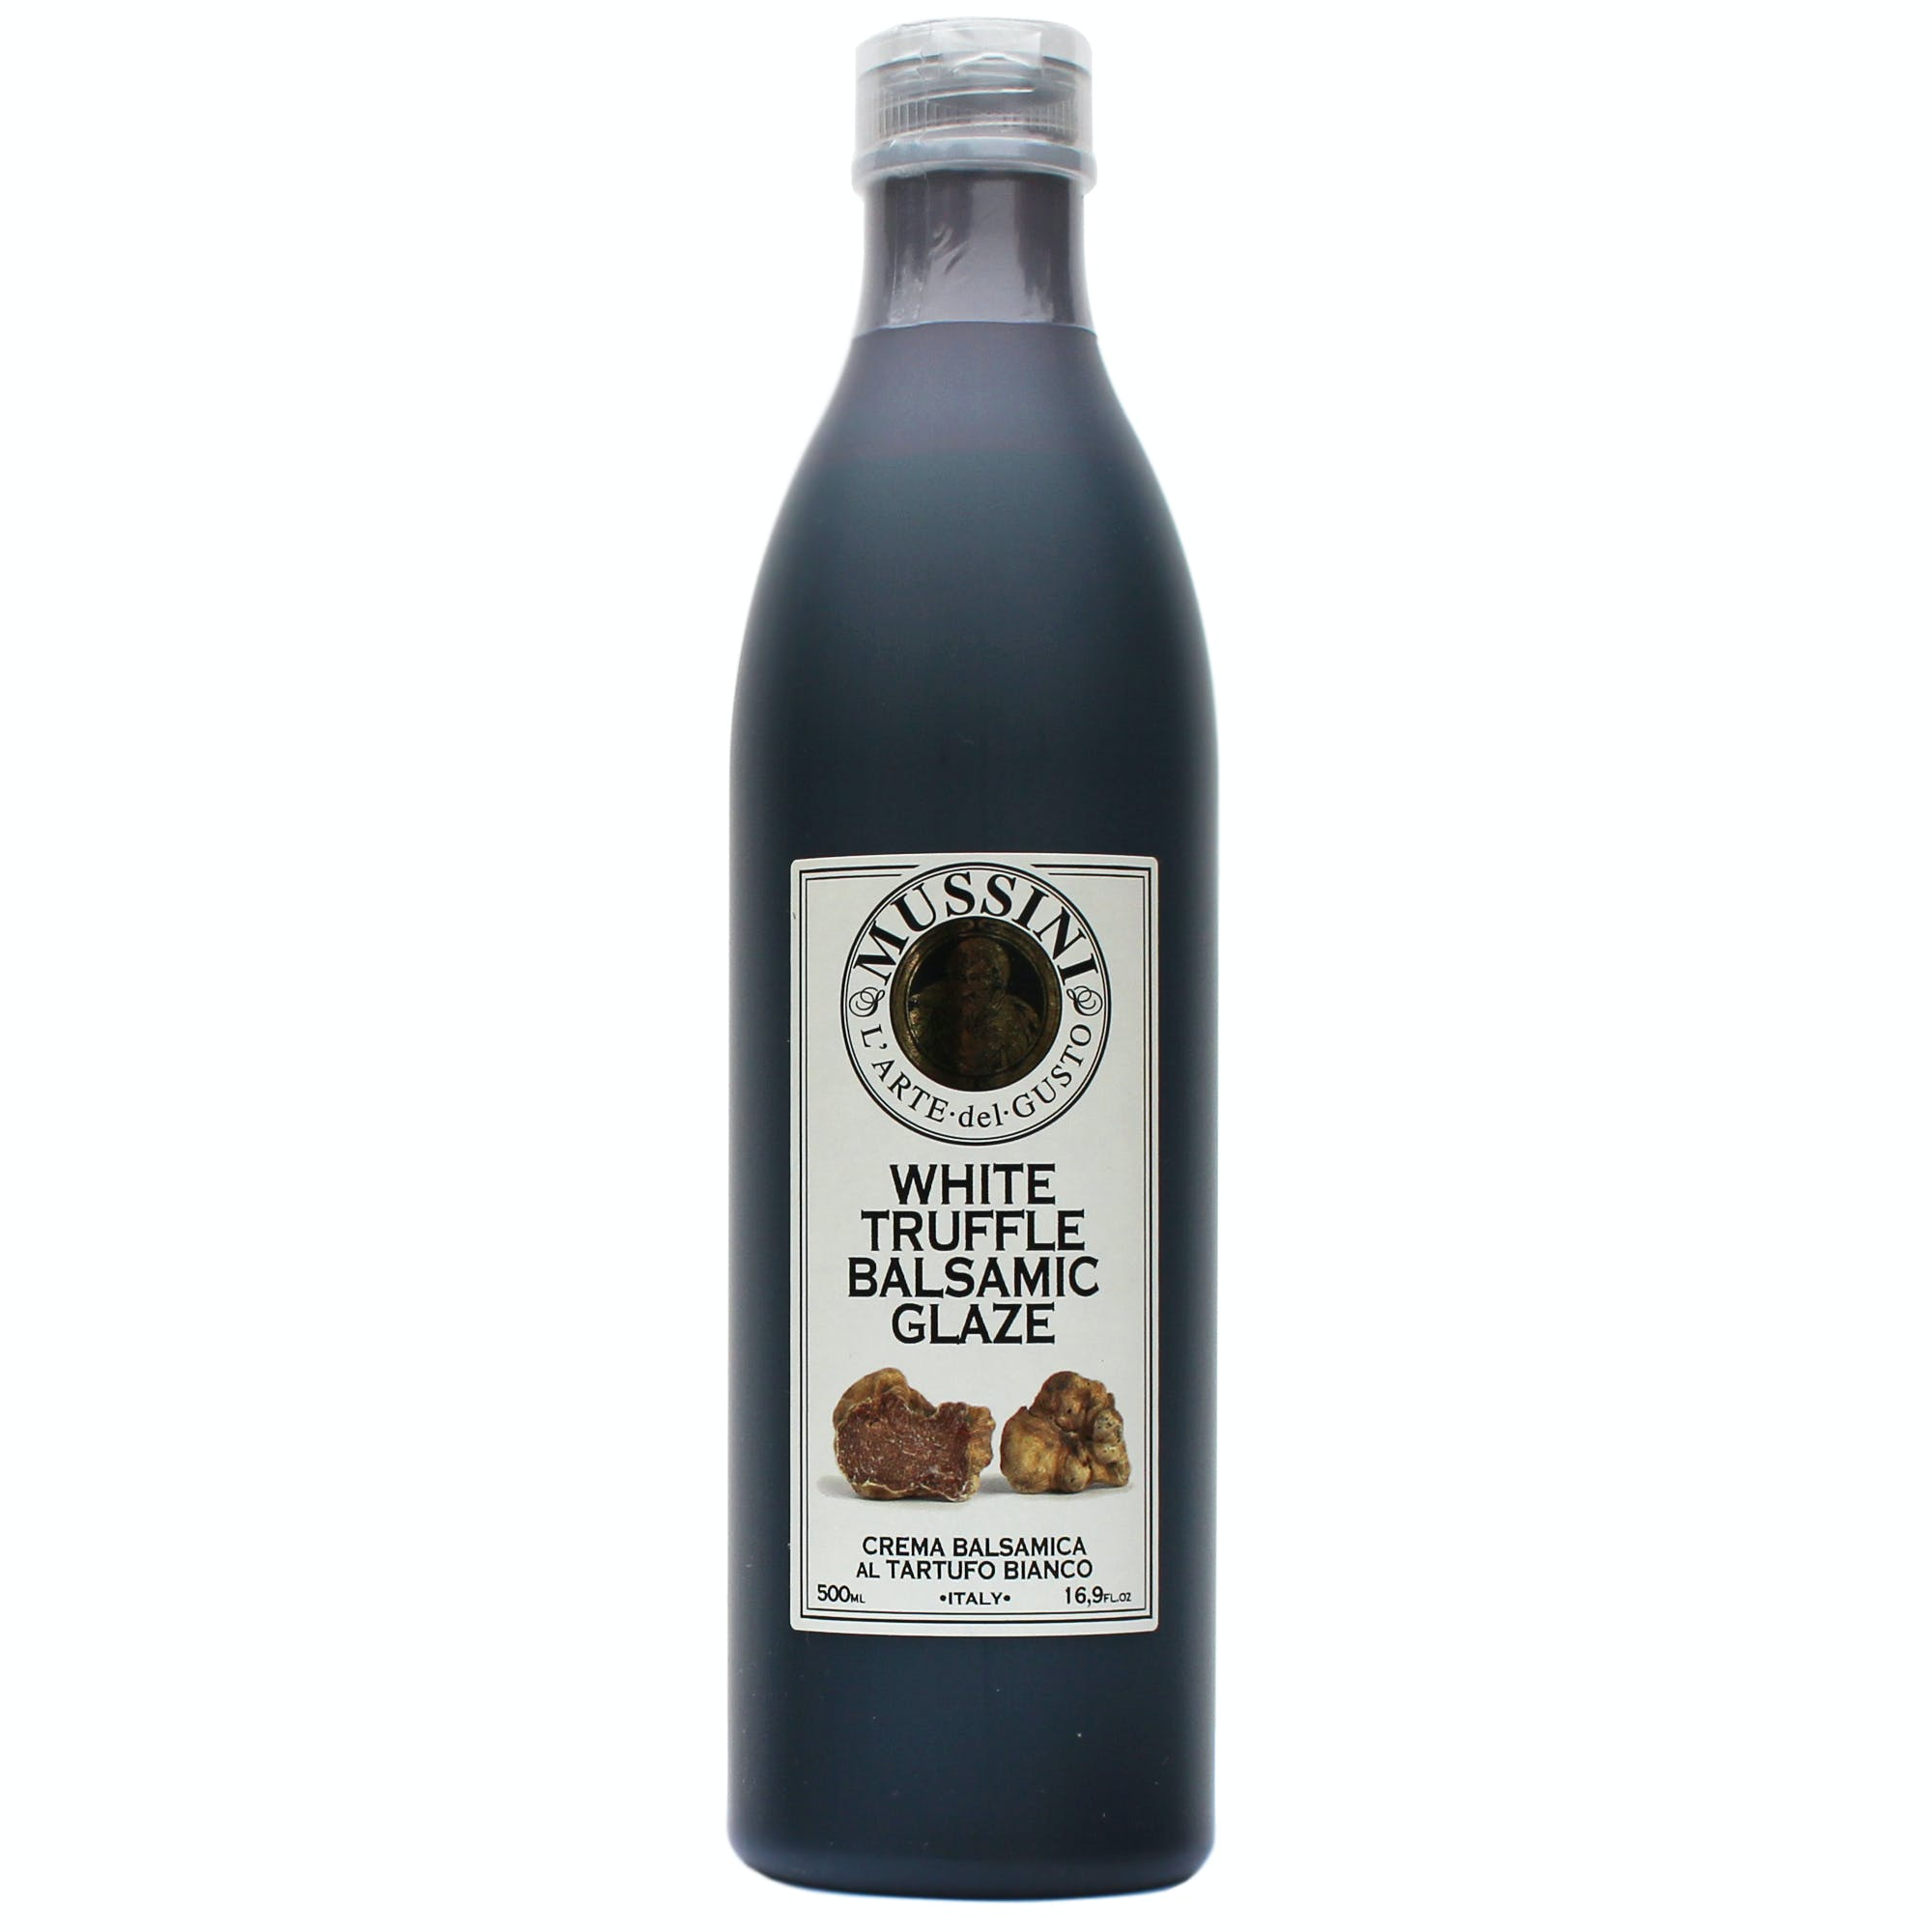 Italian Truffle Balsamic Glazes From Mussini, 16.9 Ounces Balsamic Vinegar sold by M5 Corporation